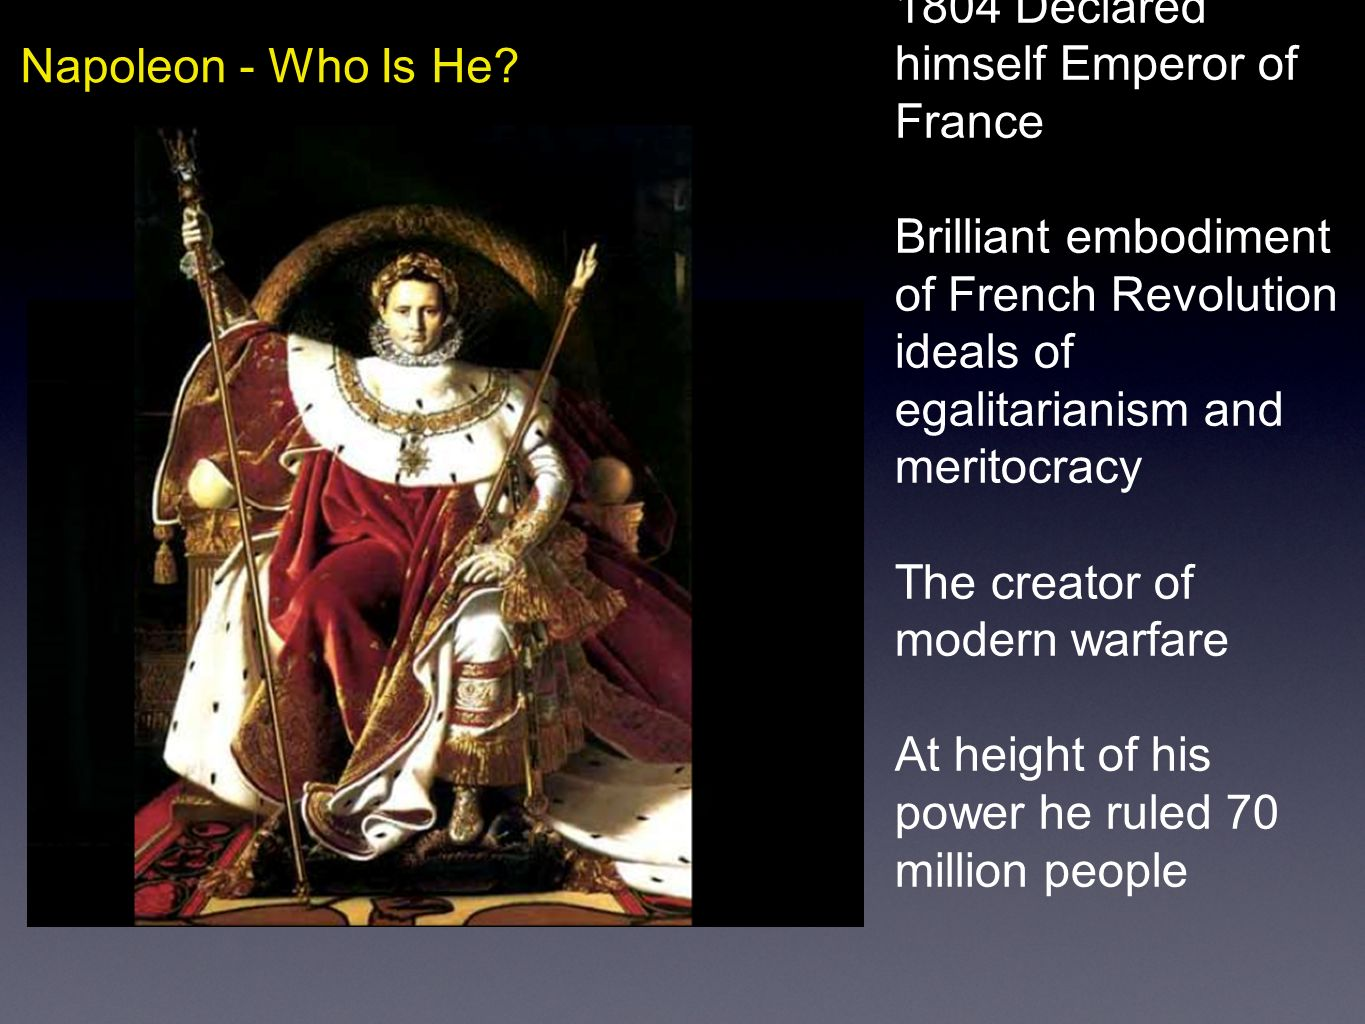 Napoleon - Who Is He? 1804 Declared himself Emperor of France Brilliant embodiment of French Revolution ideals of egalitarianism and meritocracy The c